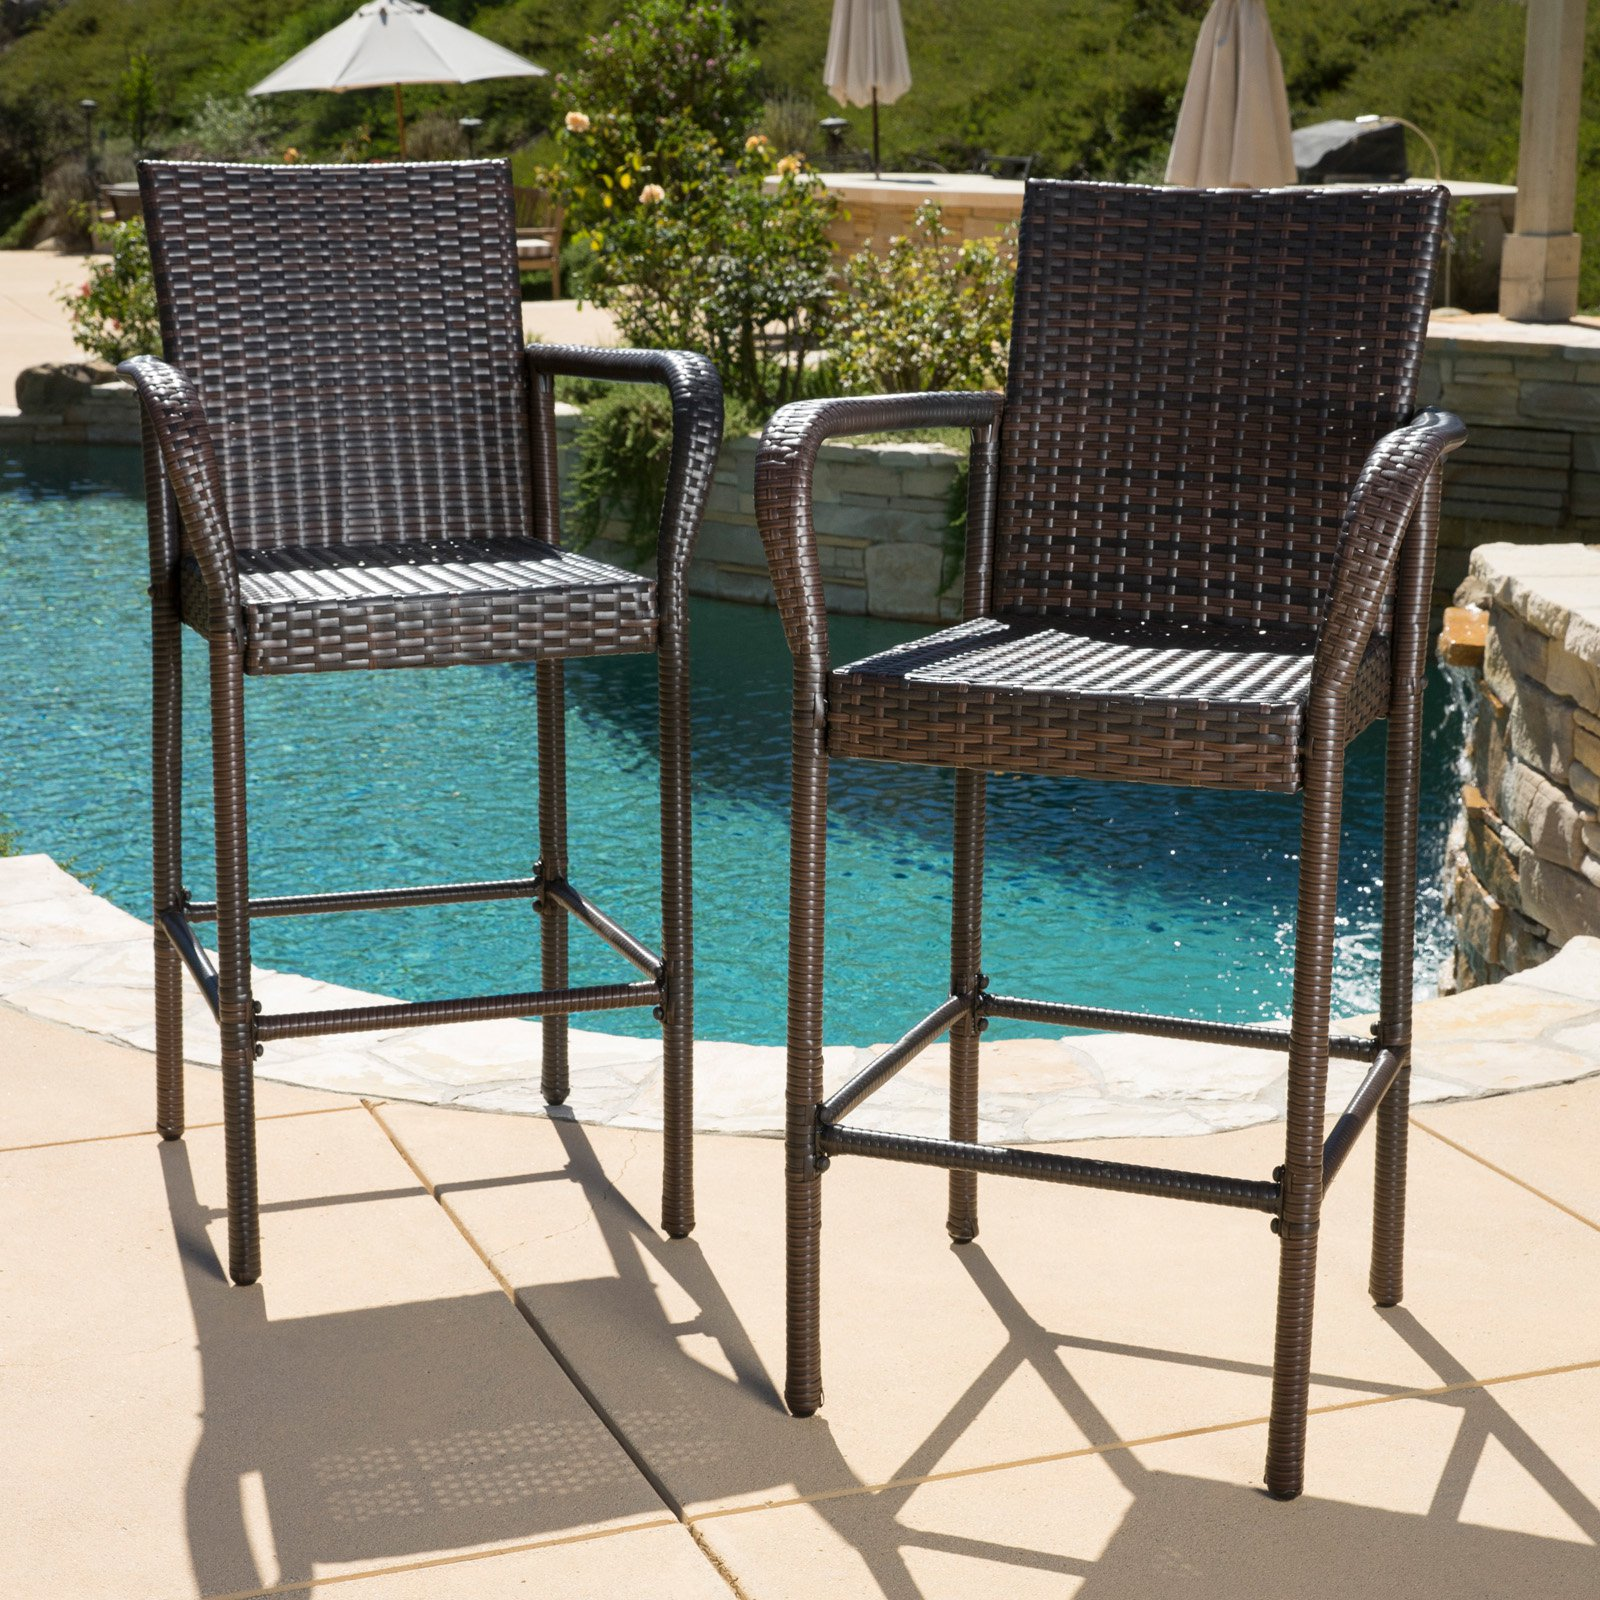 Victoria 30 in. Bar Stool - Set of 2